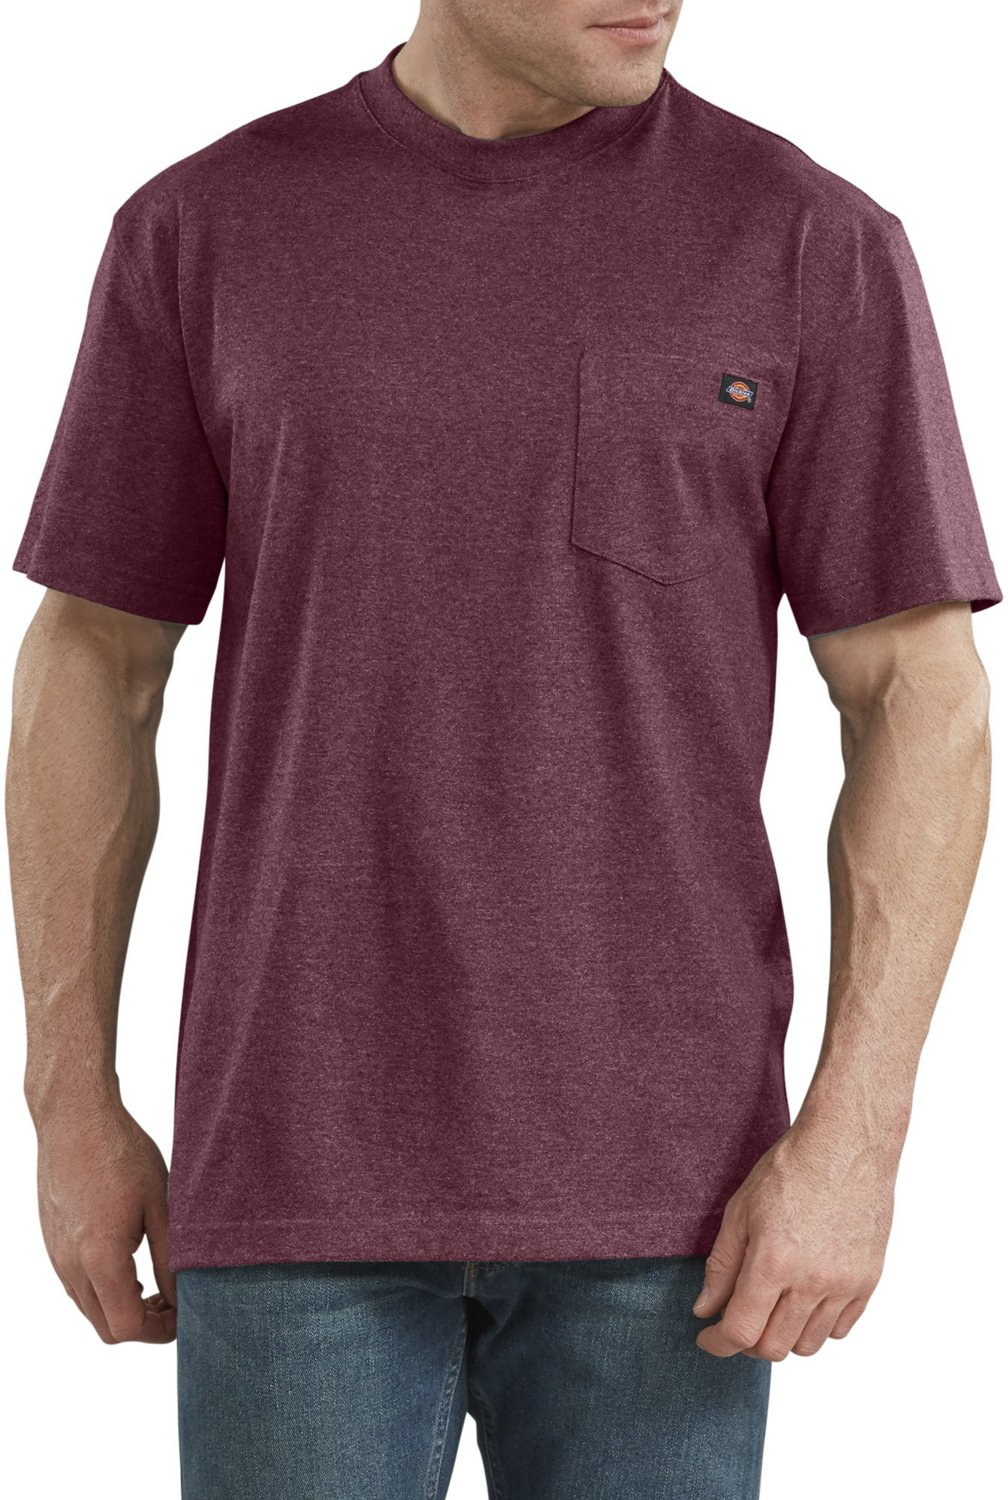 582db011a416 Display product reviews for Dickies Men's Heavyweight Crew Neck T-shirt